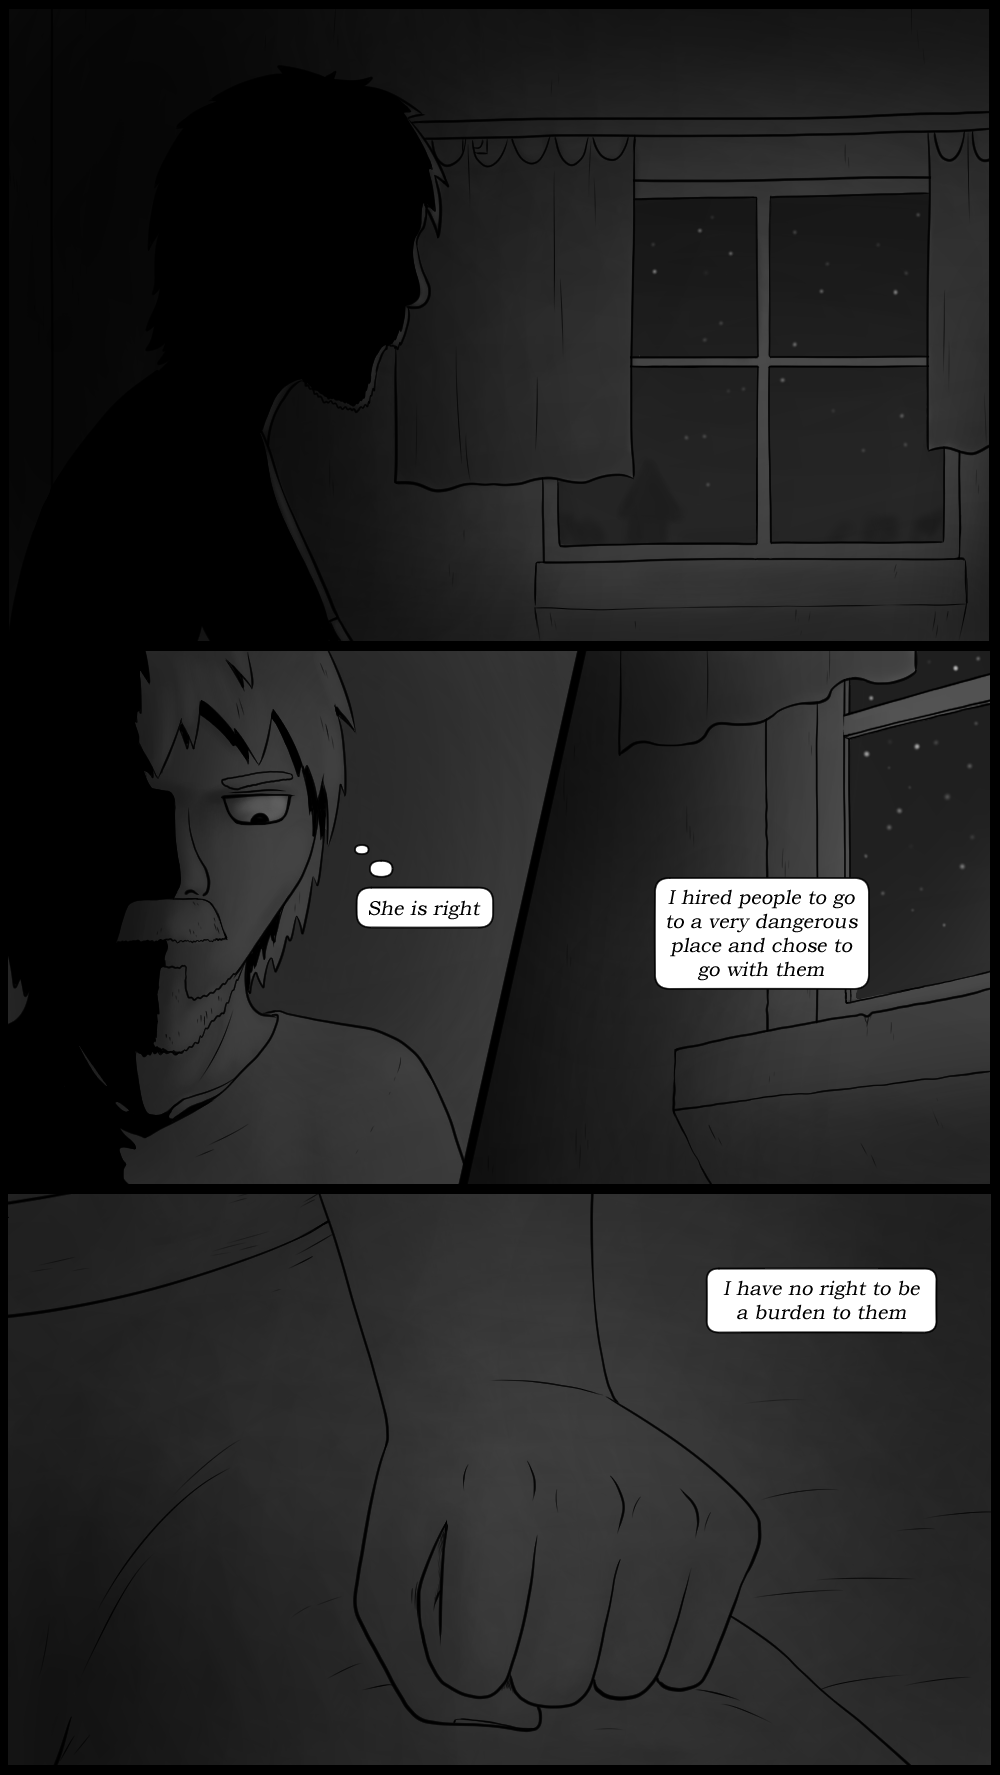 Page 111 - Thoughts in the dark